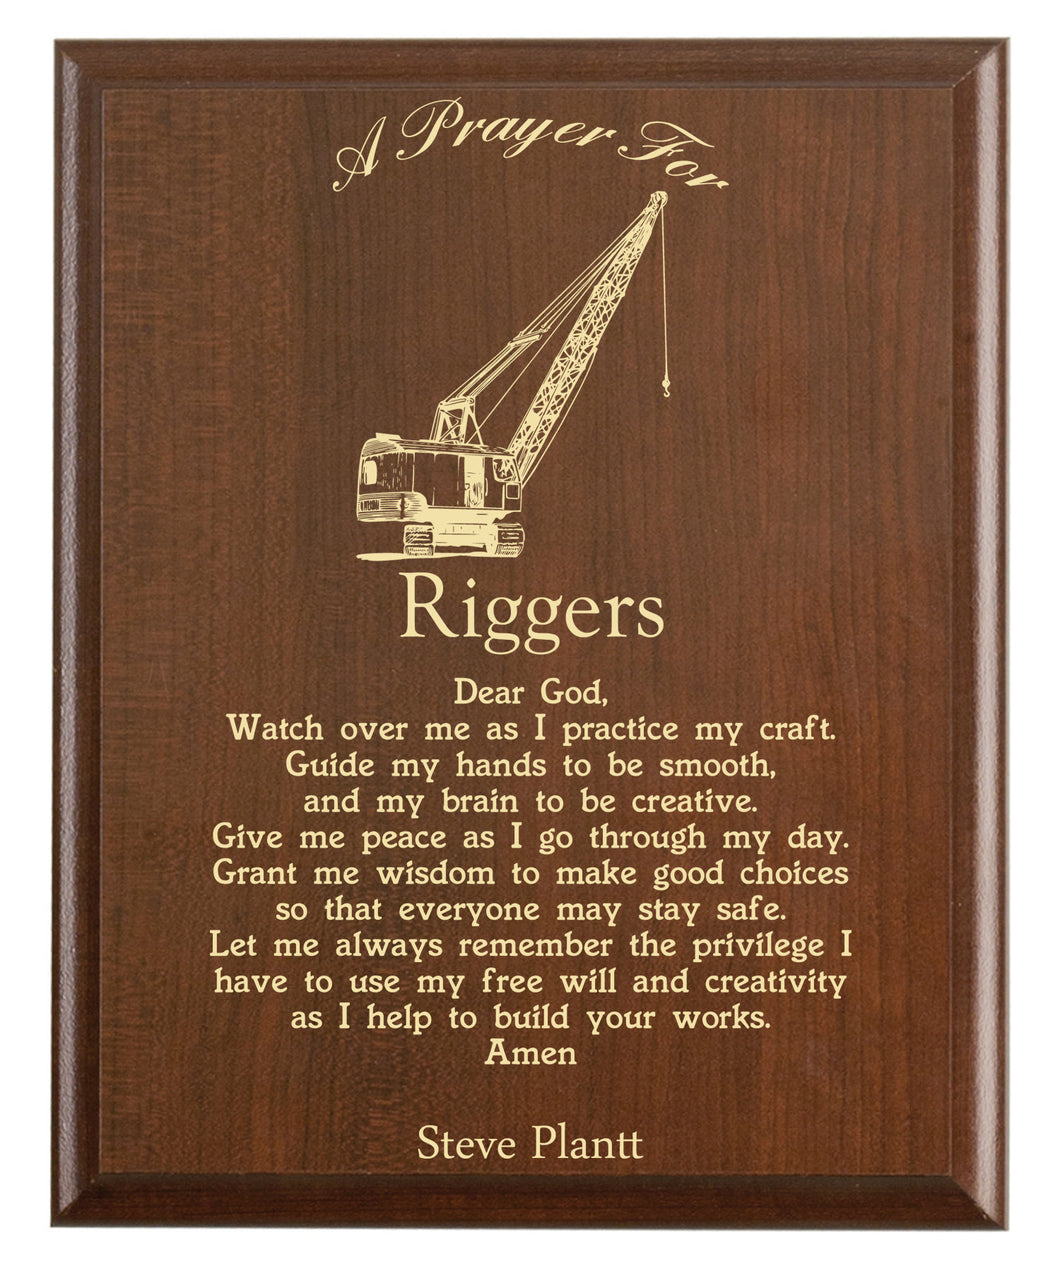 Christian prayer for a rigger with industry logo and free personalization. Cherry finish with laser engraved text.